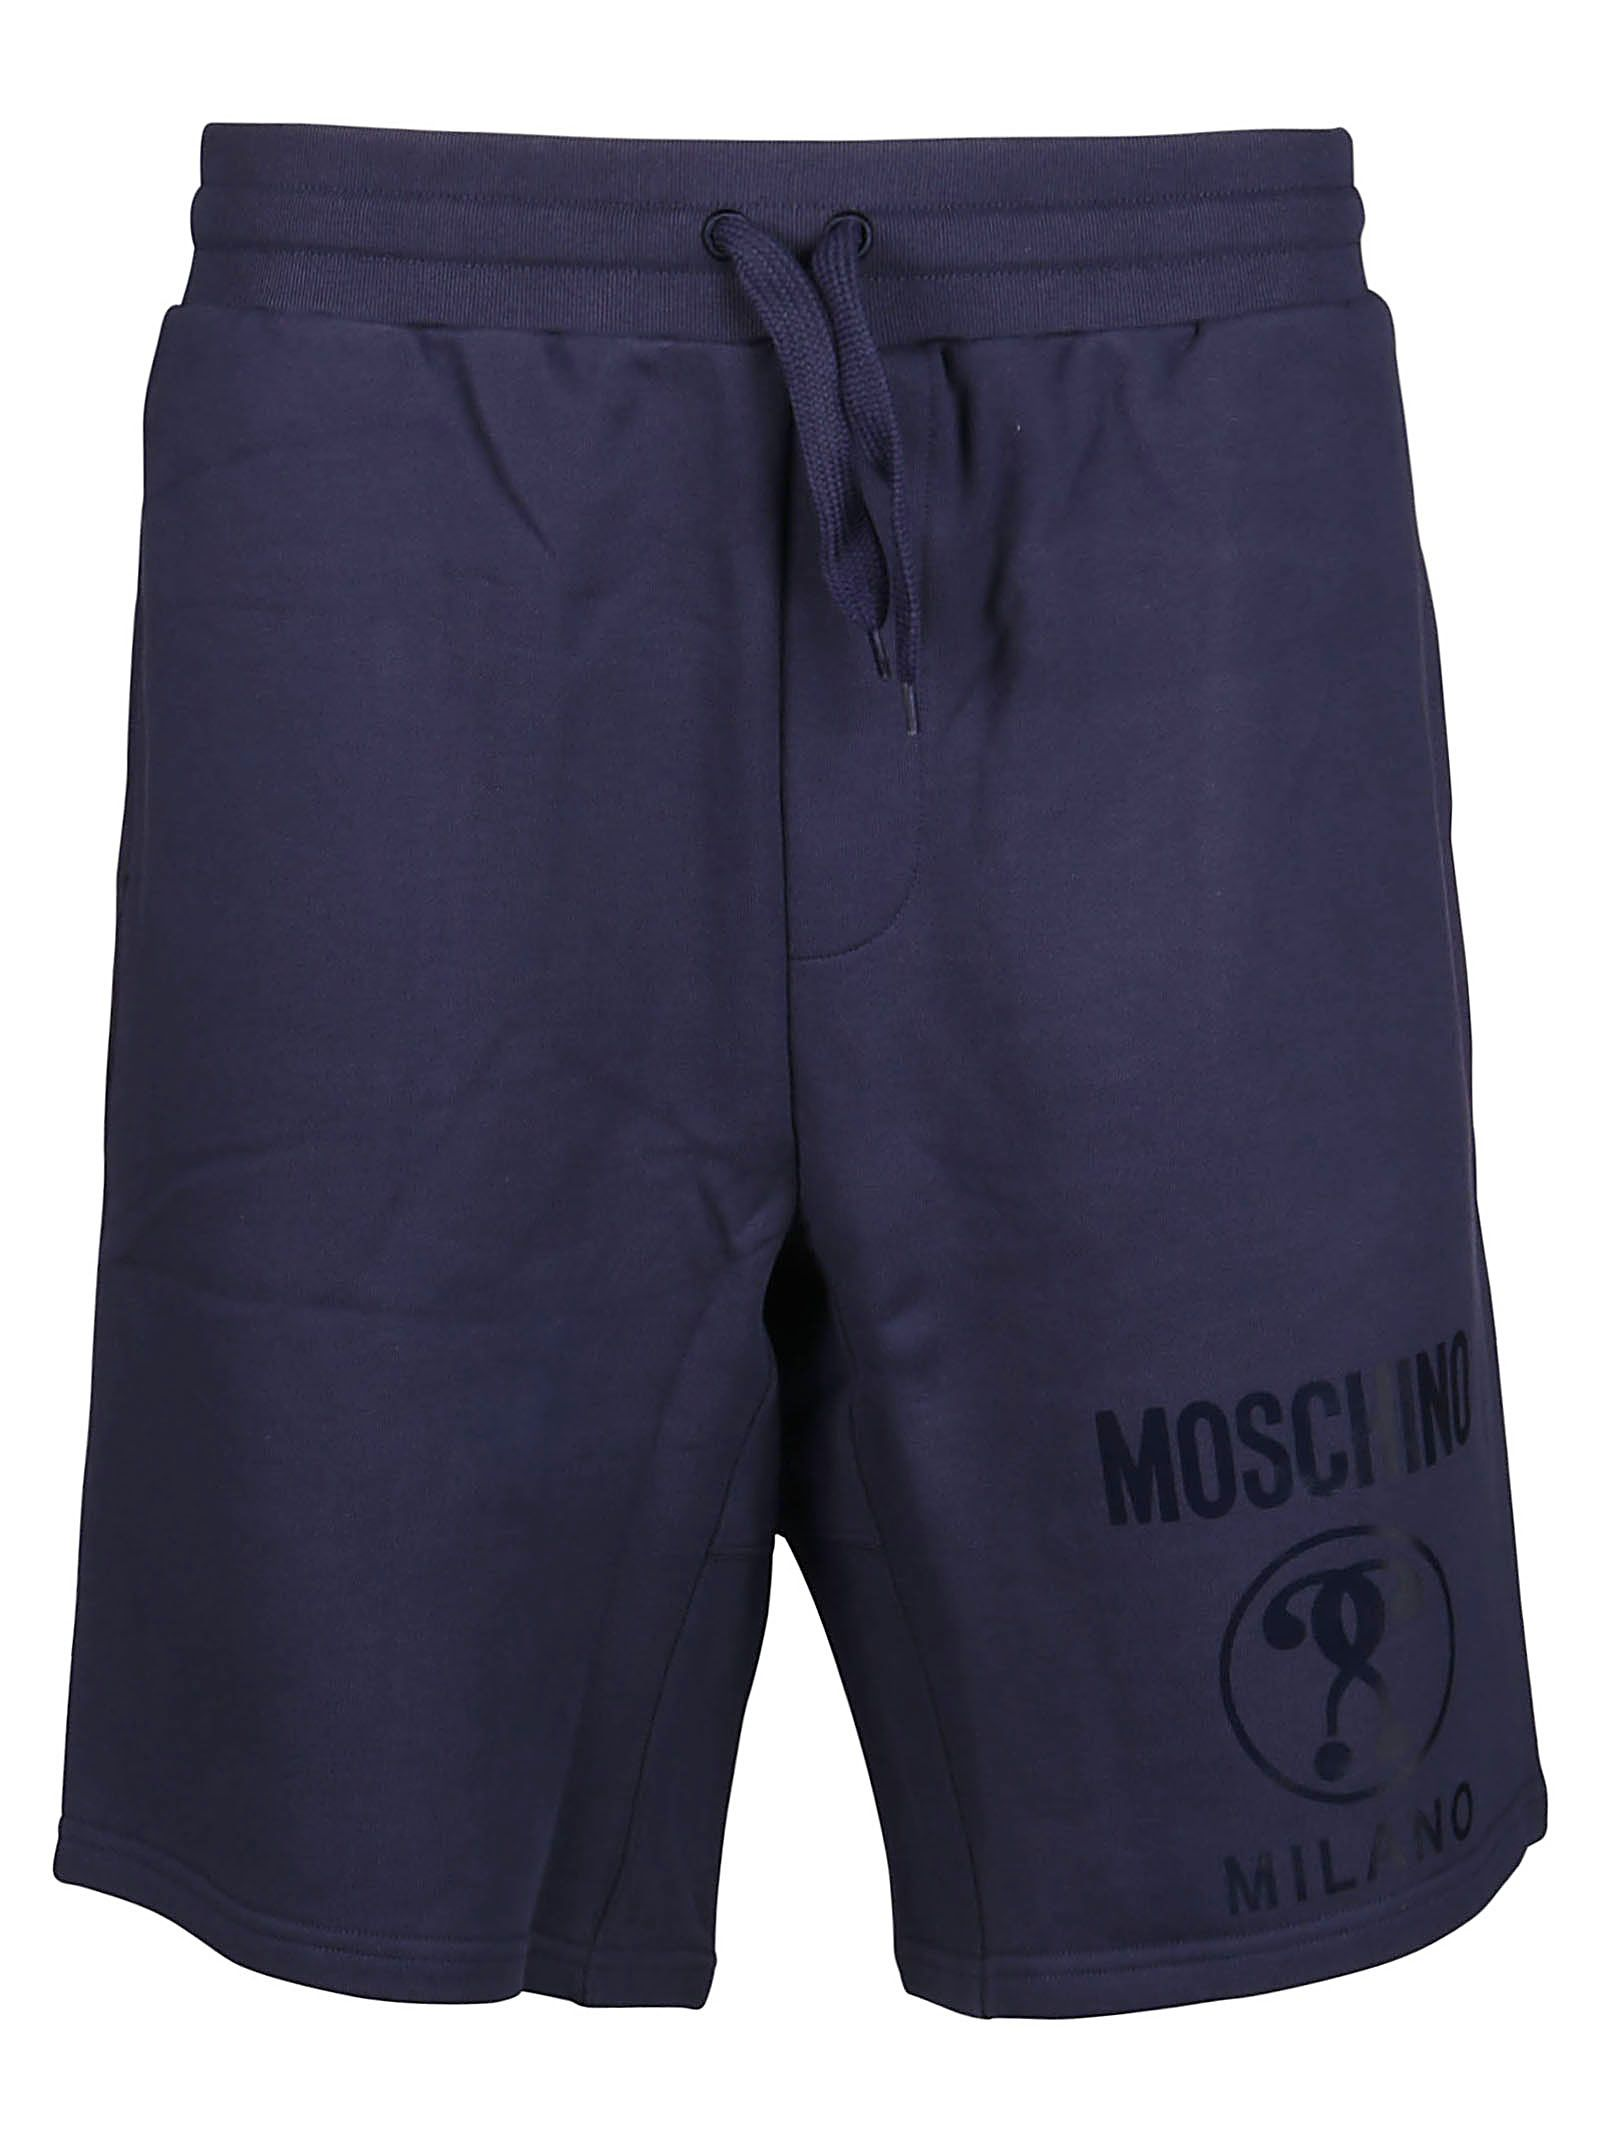 Moschino MOSCHINO MEN'S 034720270290 BLUE COTTON SHORTS